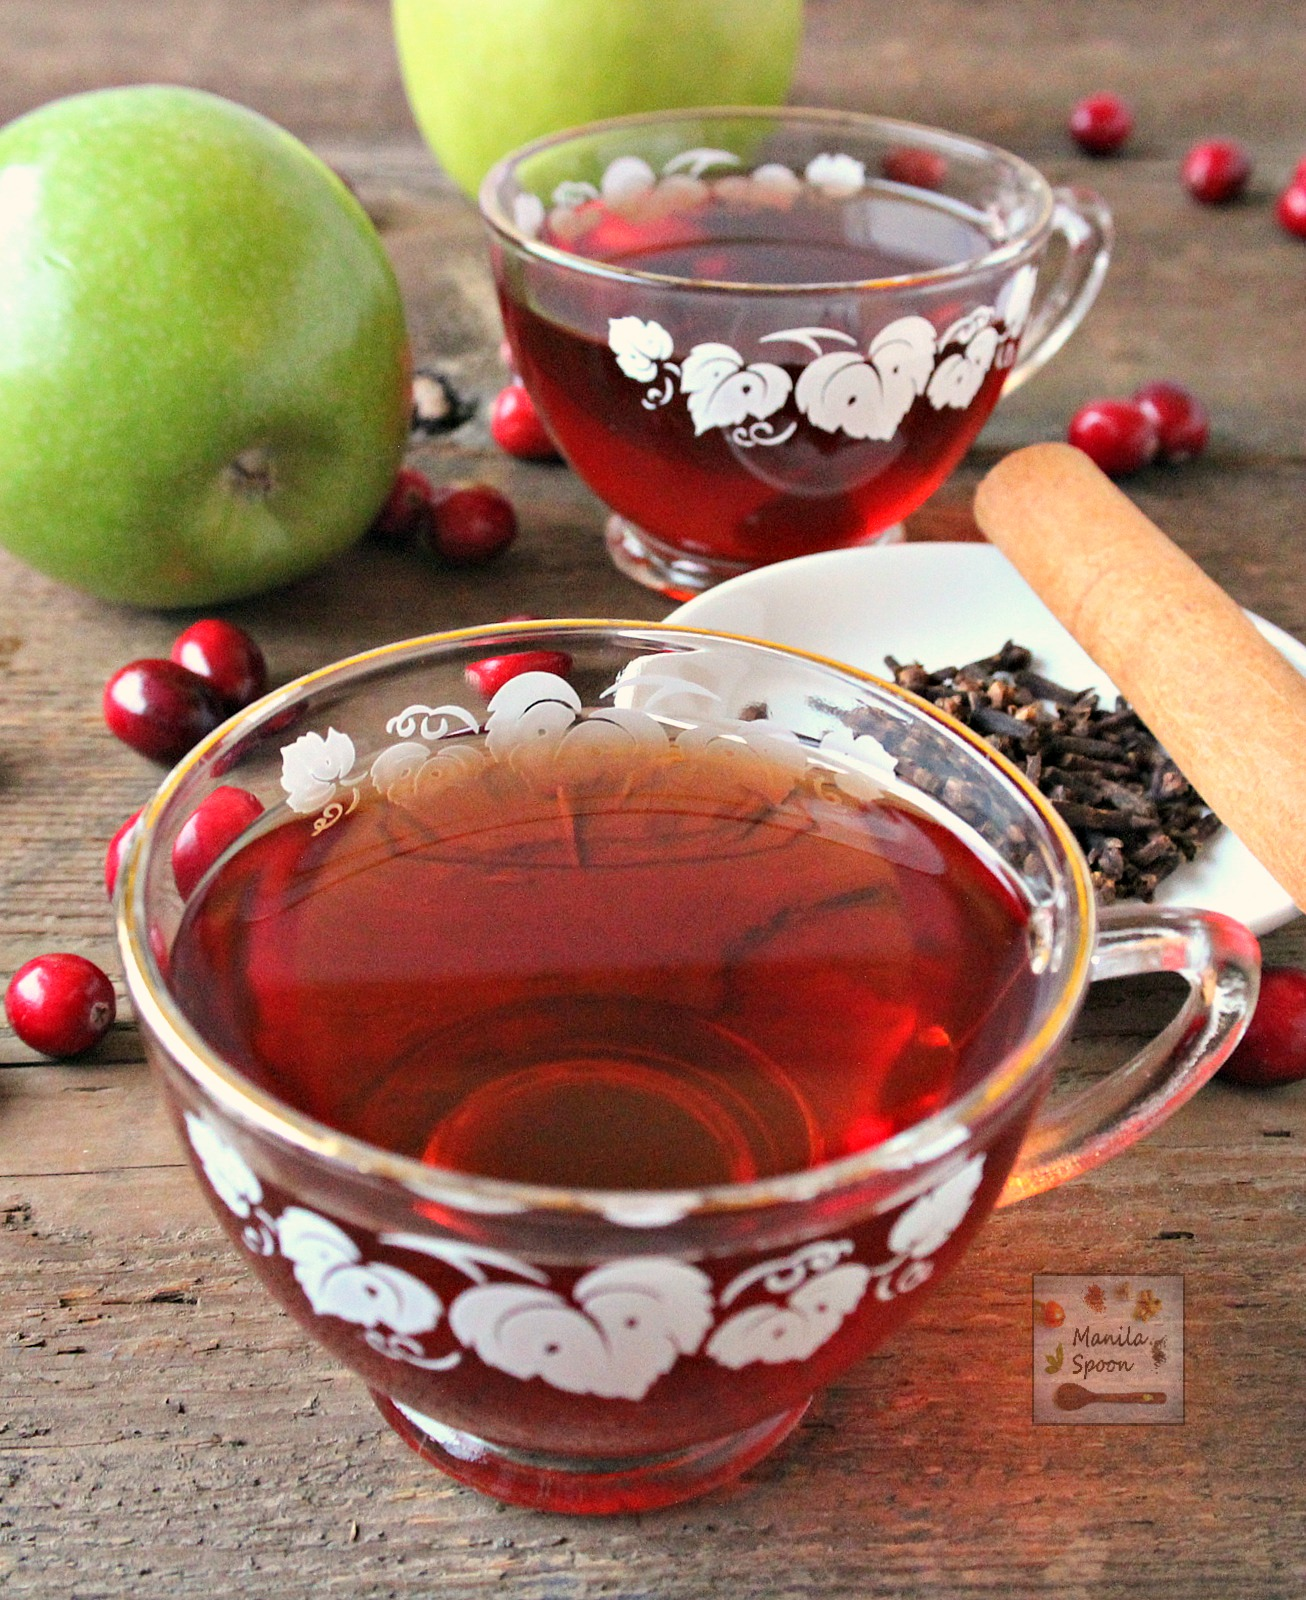 A deliciously spiced fruity cider with a mix of apple and cranberry juices and made in the slow cooker for ease and convenience. Family friendly and party-perfect! | manilaspoon.com